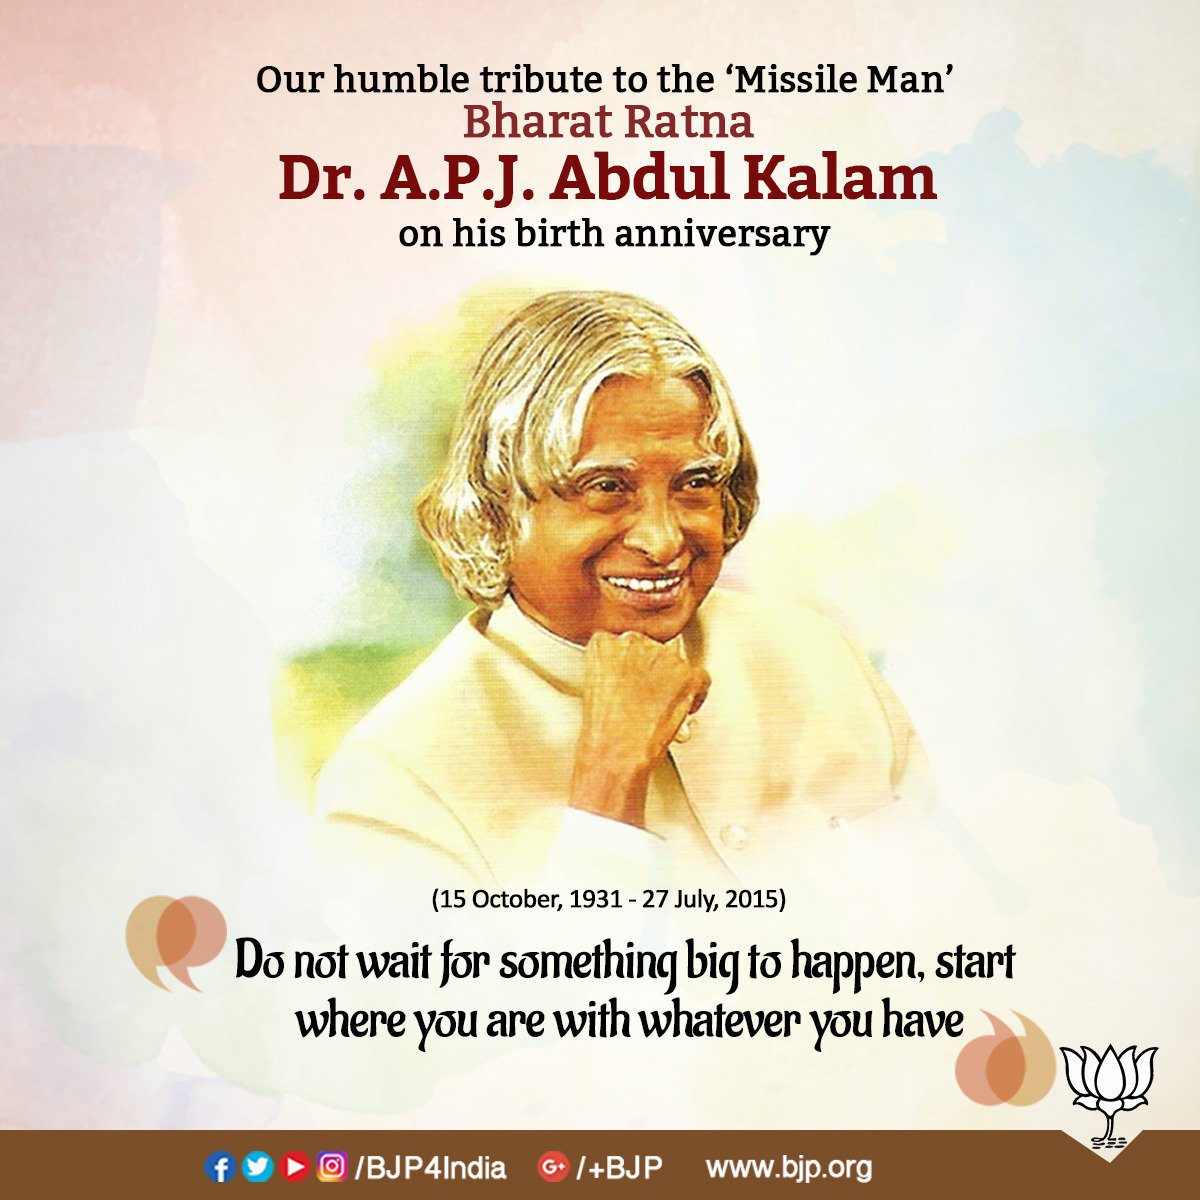 Our humble tribute to the Bharat Ratna Dr. A.P.J Abdul Kalam on his birth anniversary.